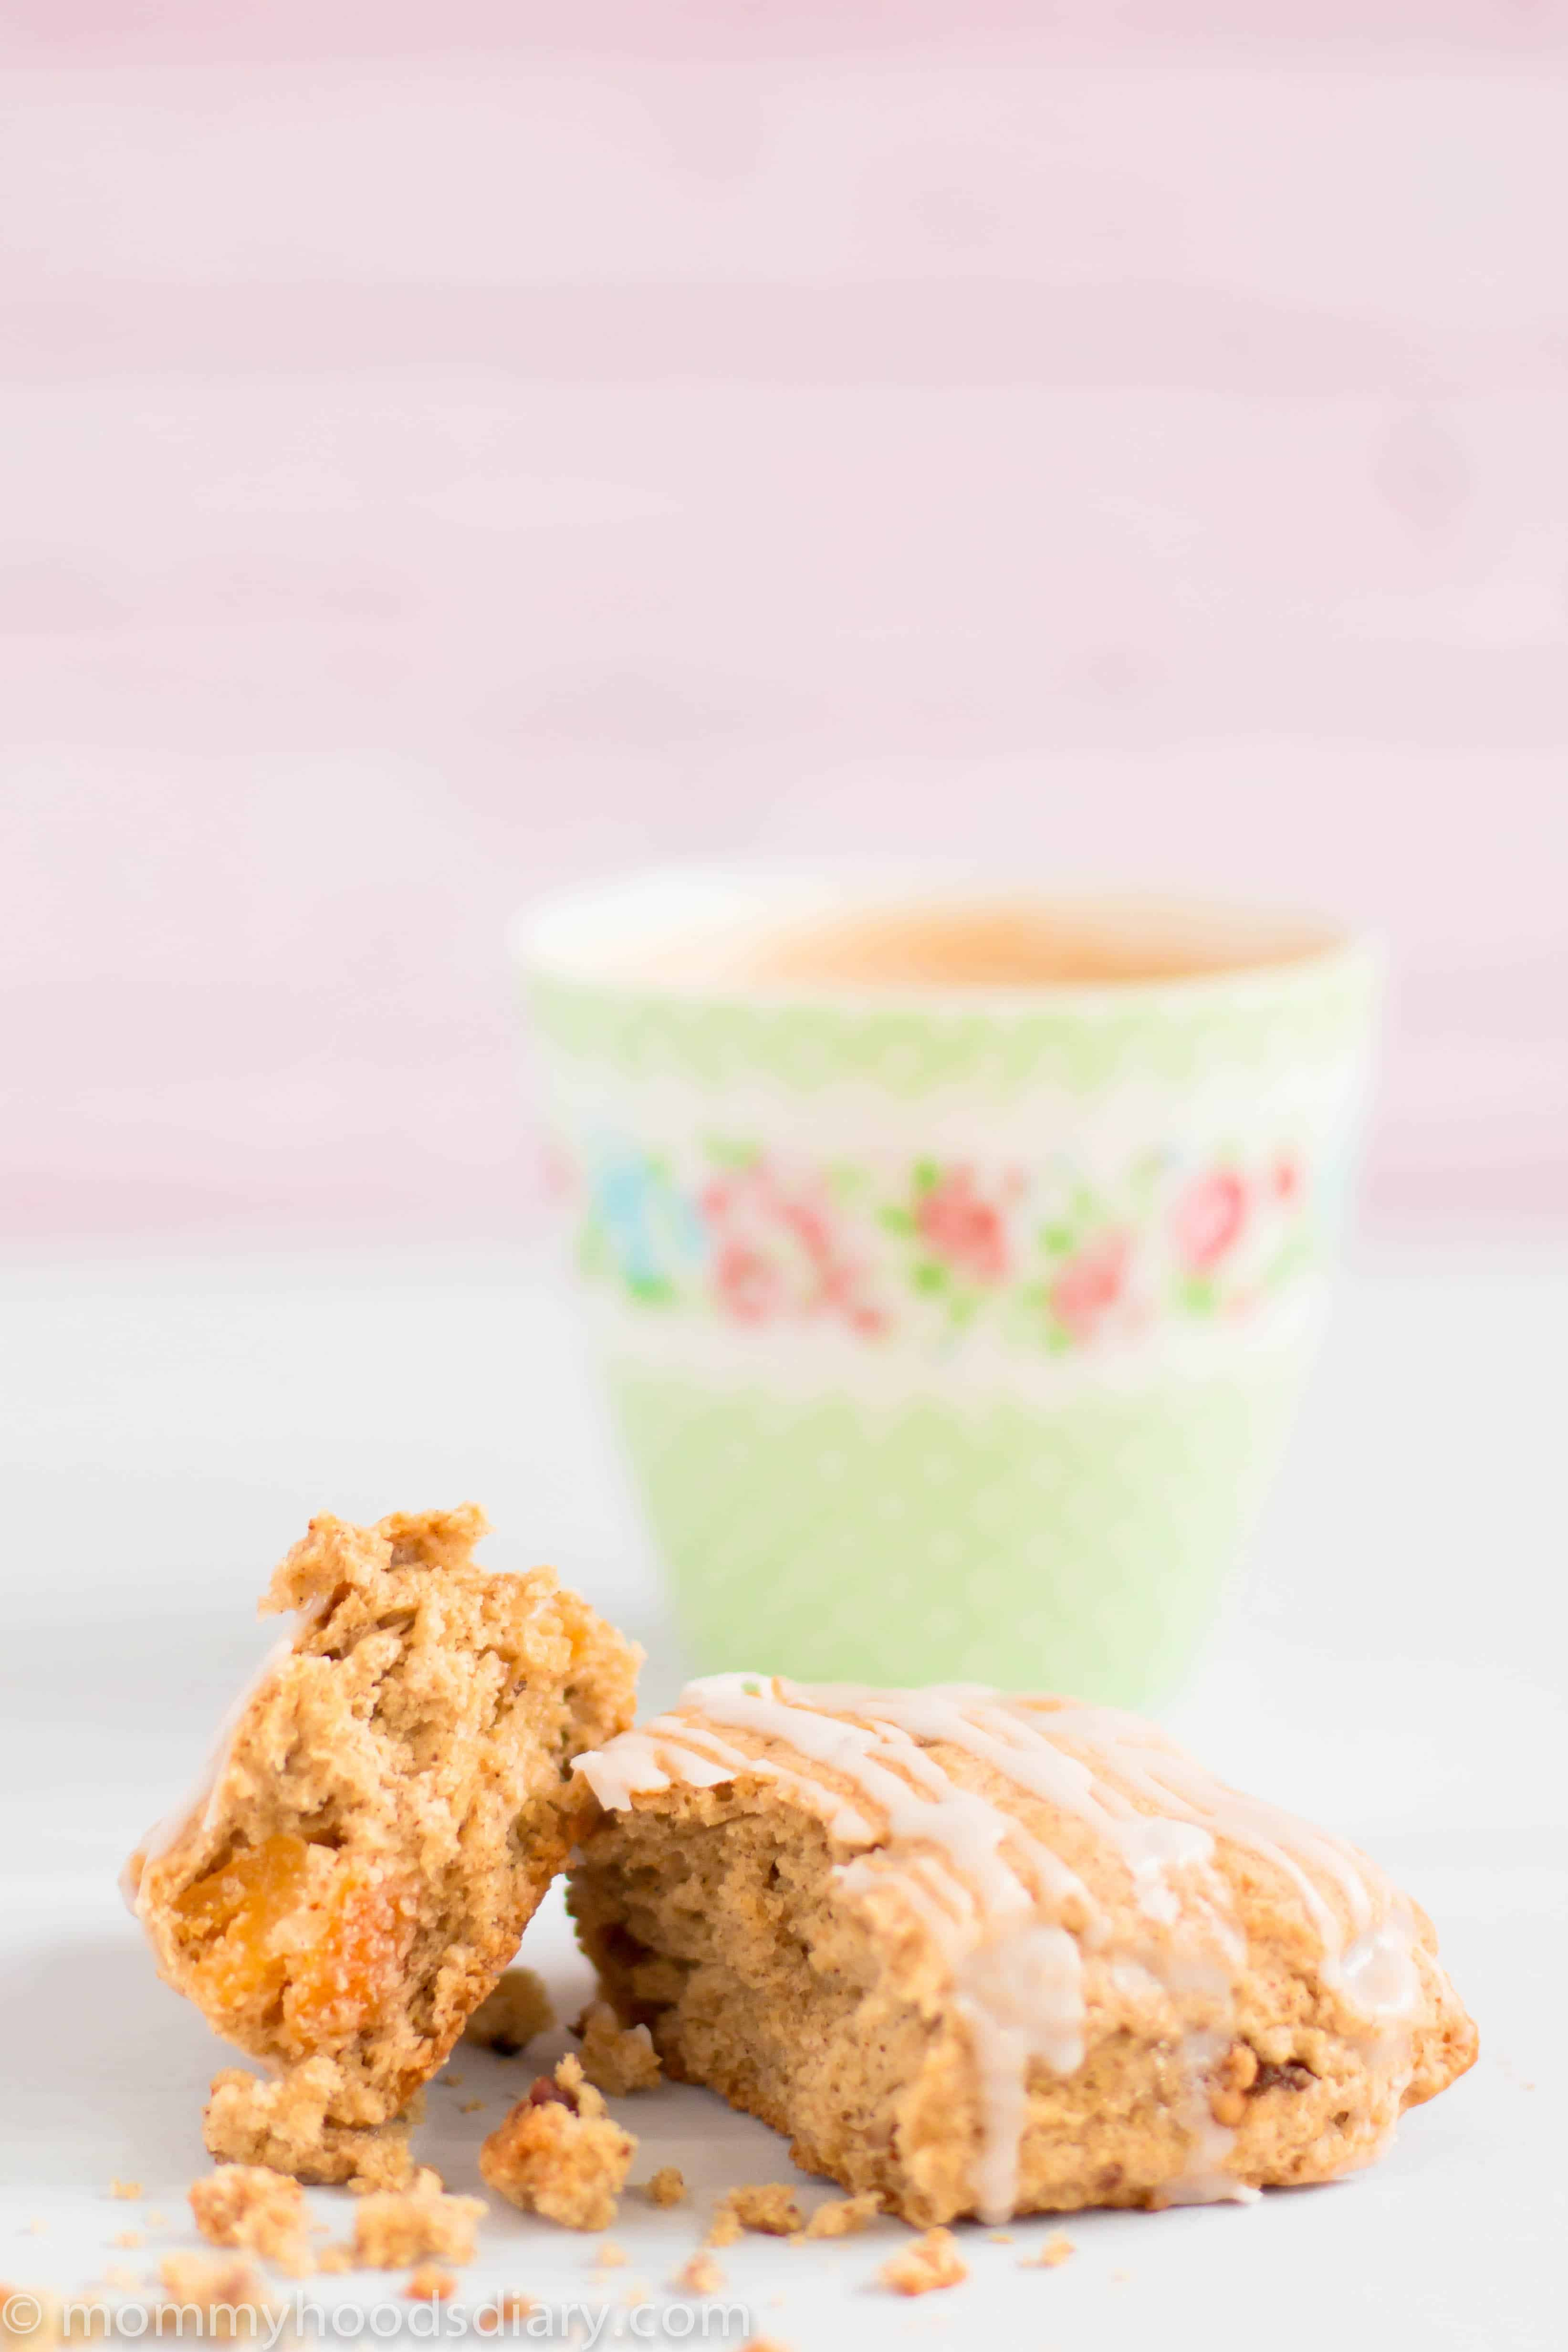 These Gingerbread Apricot Scones are simply delicious!! They're delicate, flaky, lightly sweet and full of all the cozy holiday's flavors. Perfect with a cup of coffee or tea on a chilly winter morning.  http://mommyshomecooking.com